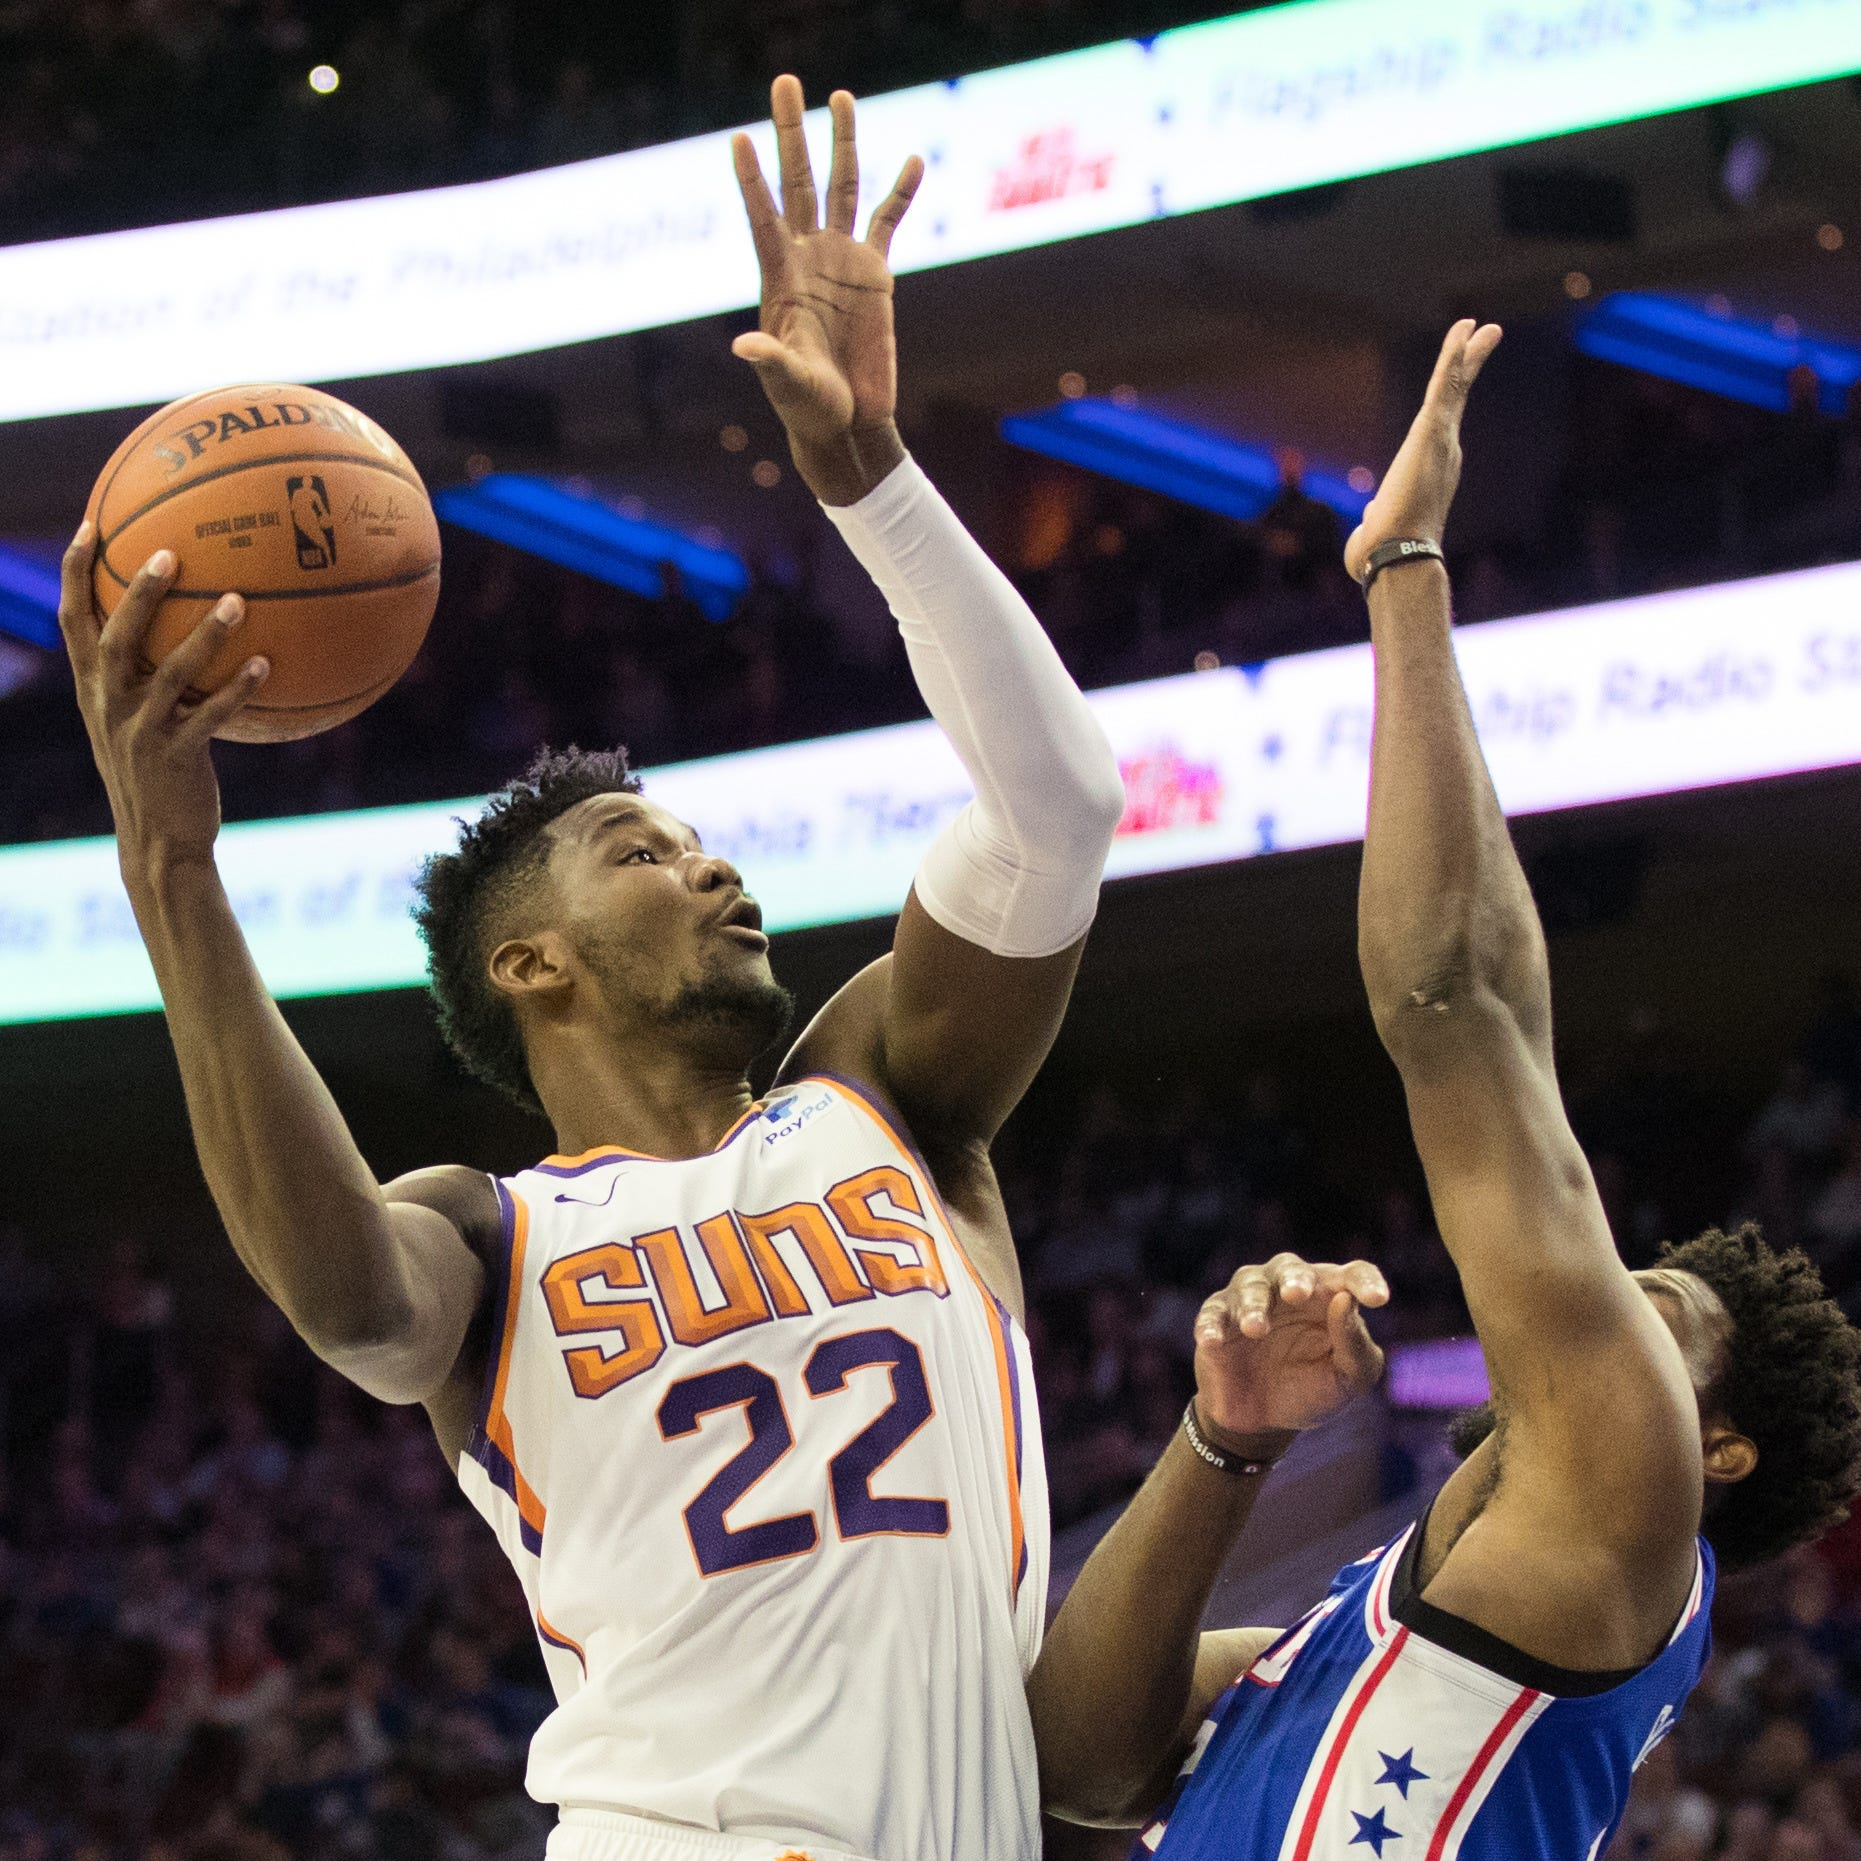 Deandre Ayton gains Joel Embiid's respect, but loses battle of big men as Suns fall to 76ers